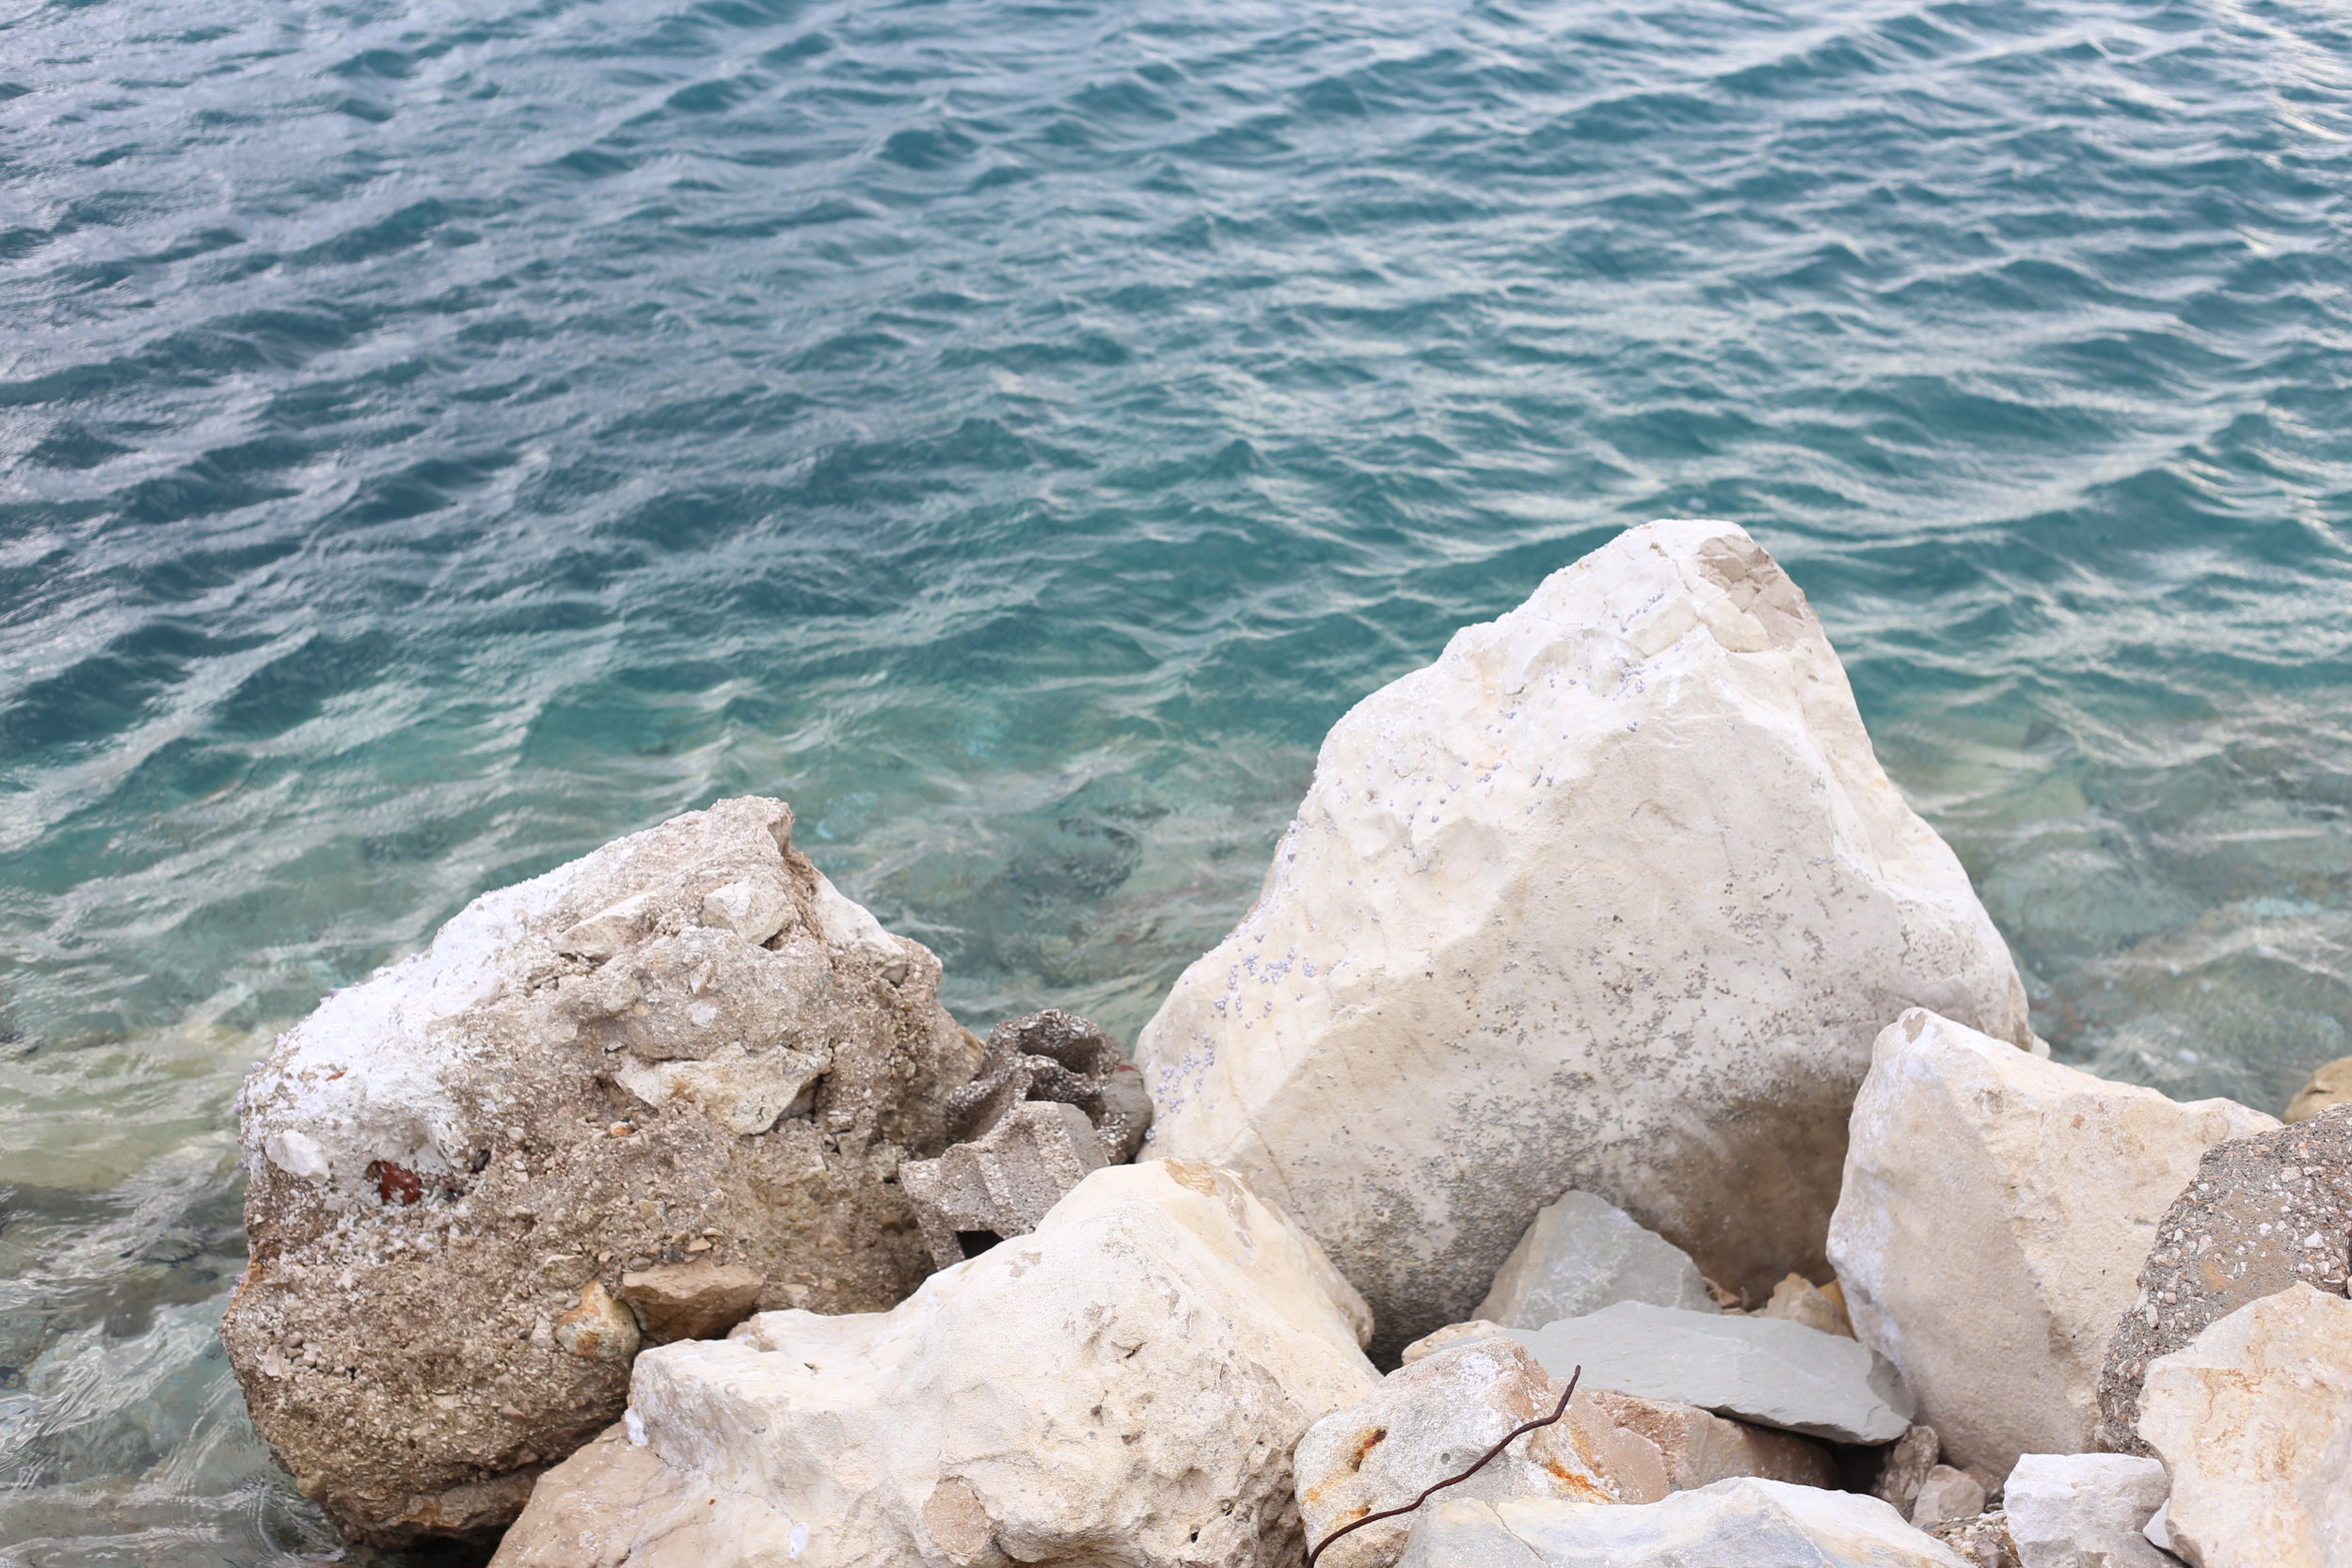 The Adriatic sea with blue waters and white rocks on the Croatian coast.